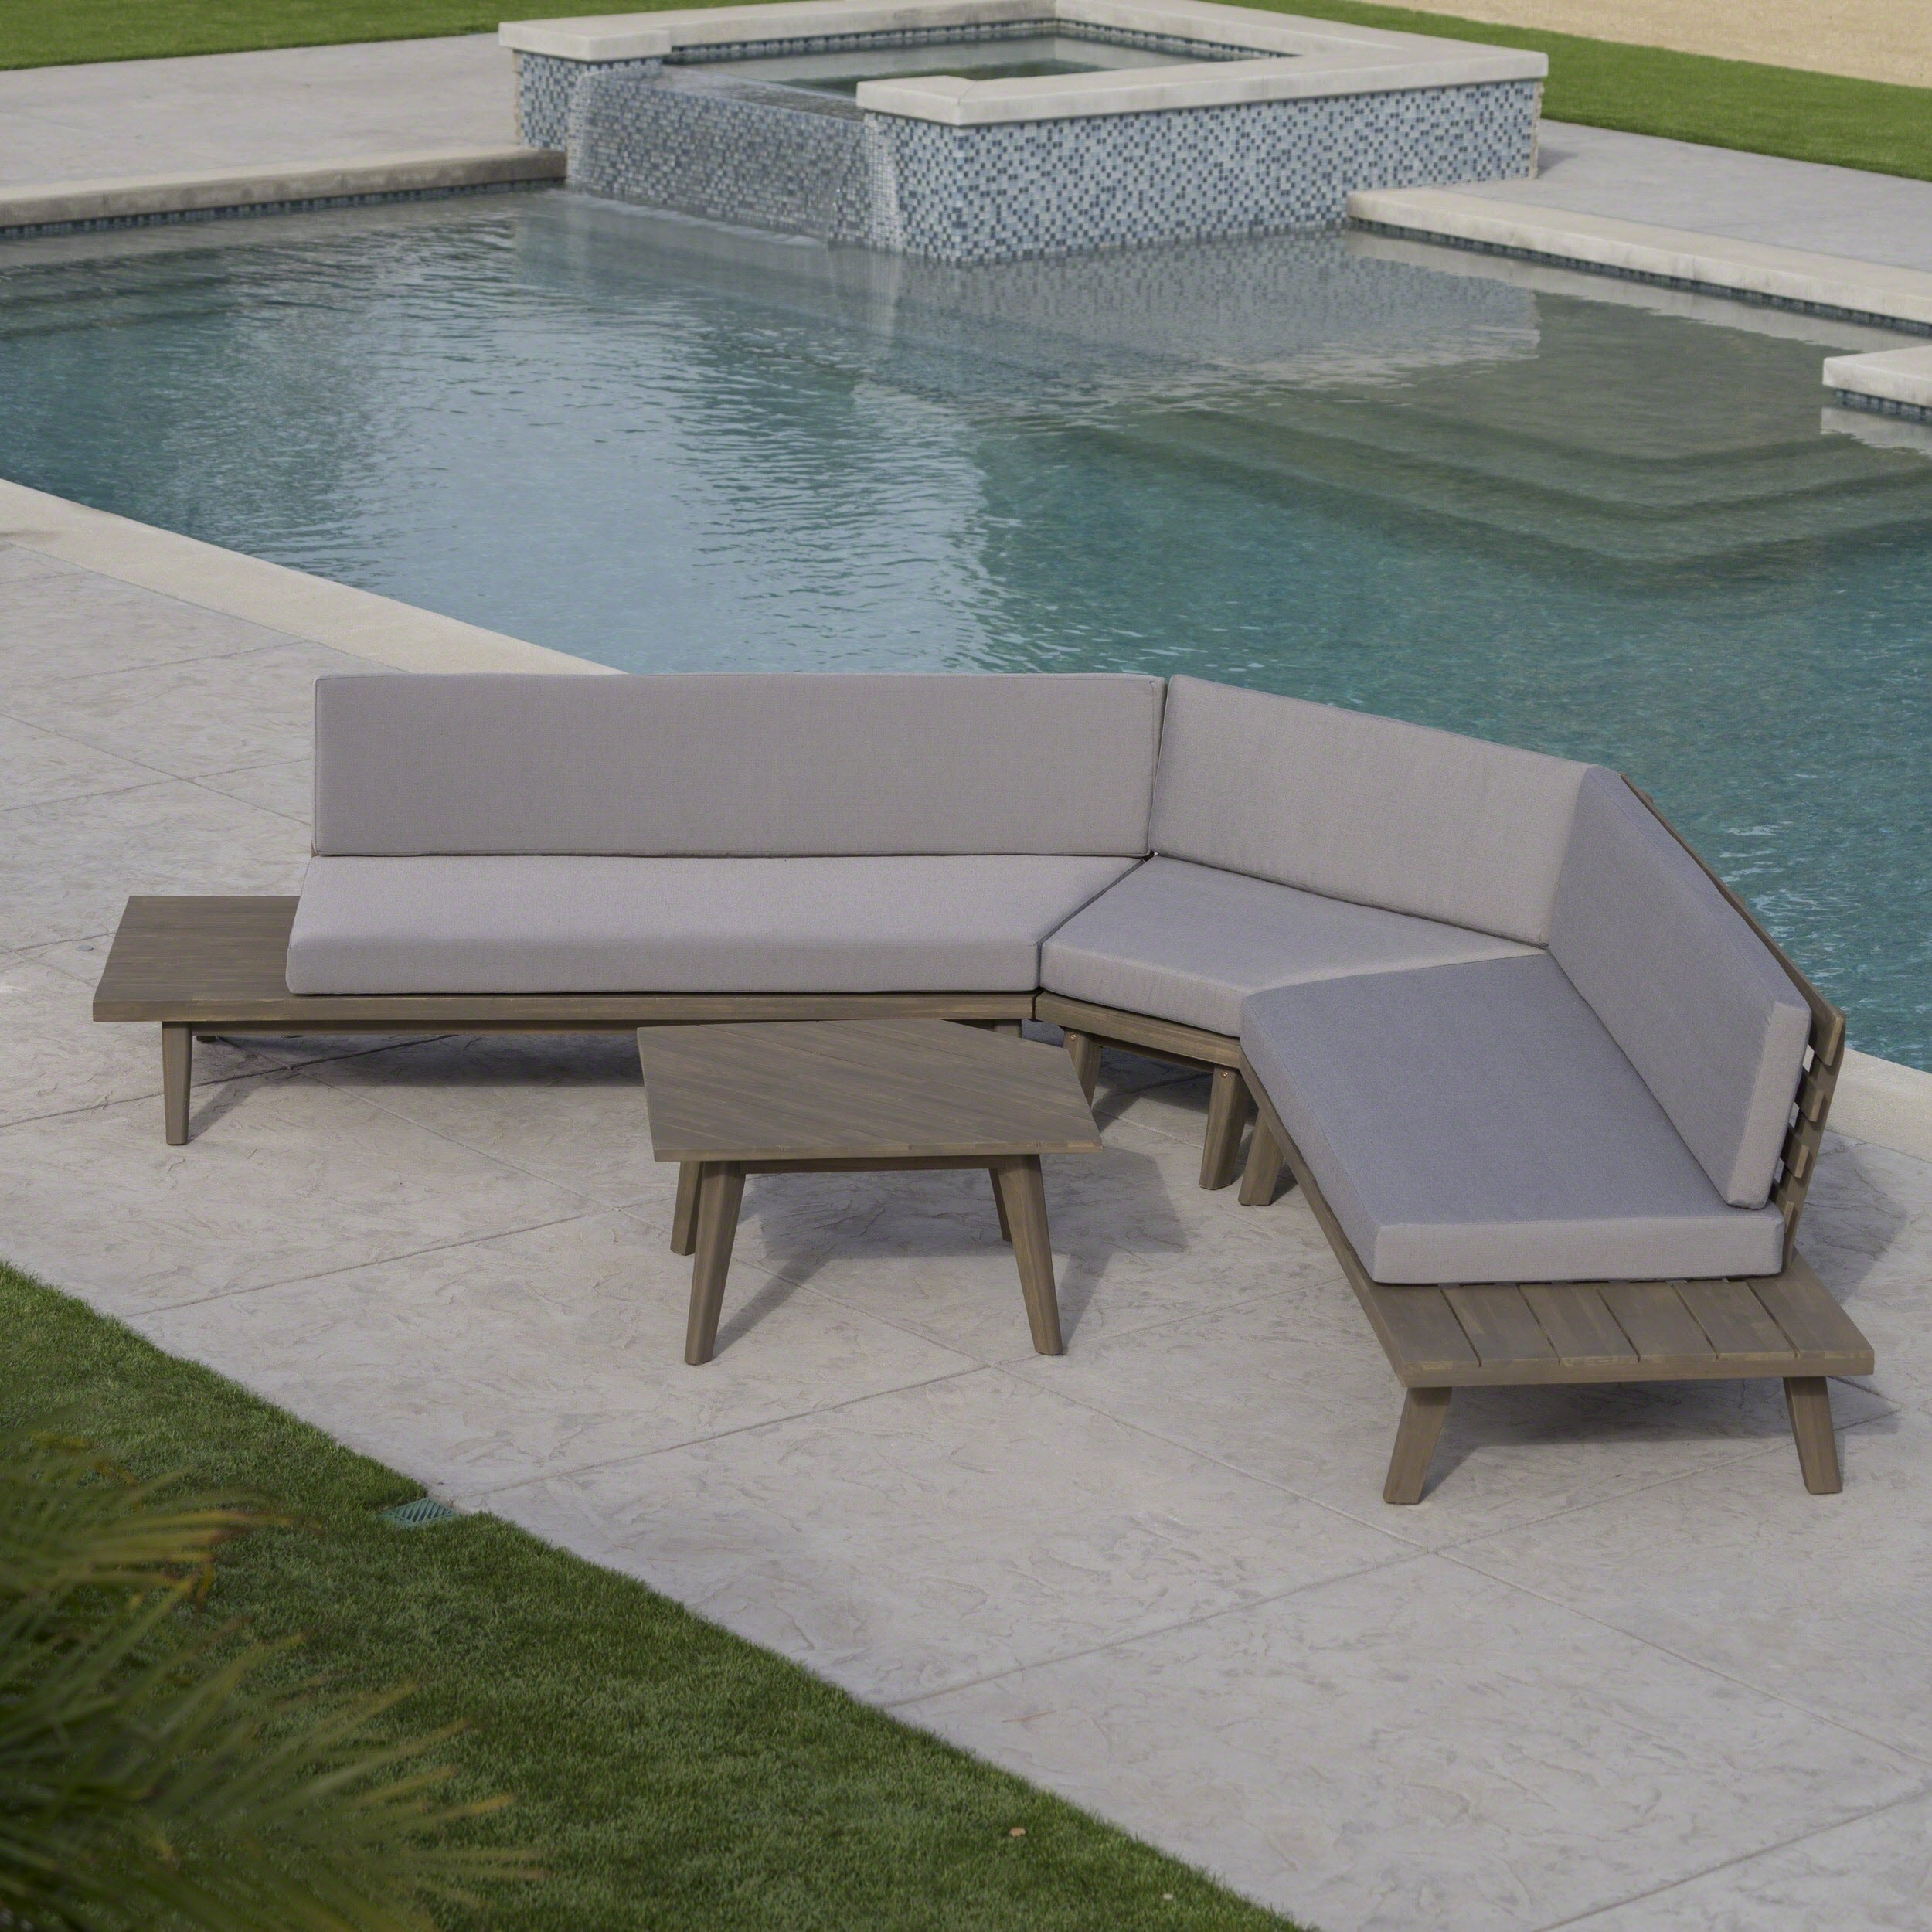 Hillcrest Outdoor 4 Piece V Shaped Wood Sectional Sofa Set With Cushion By Christopher Knight Home Ships To Canada Ca 18189179